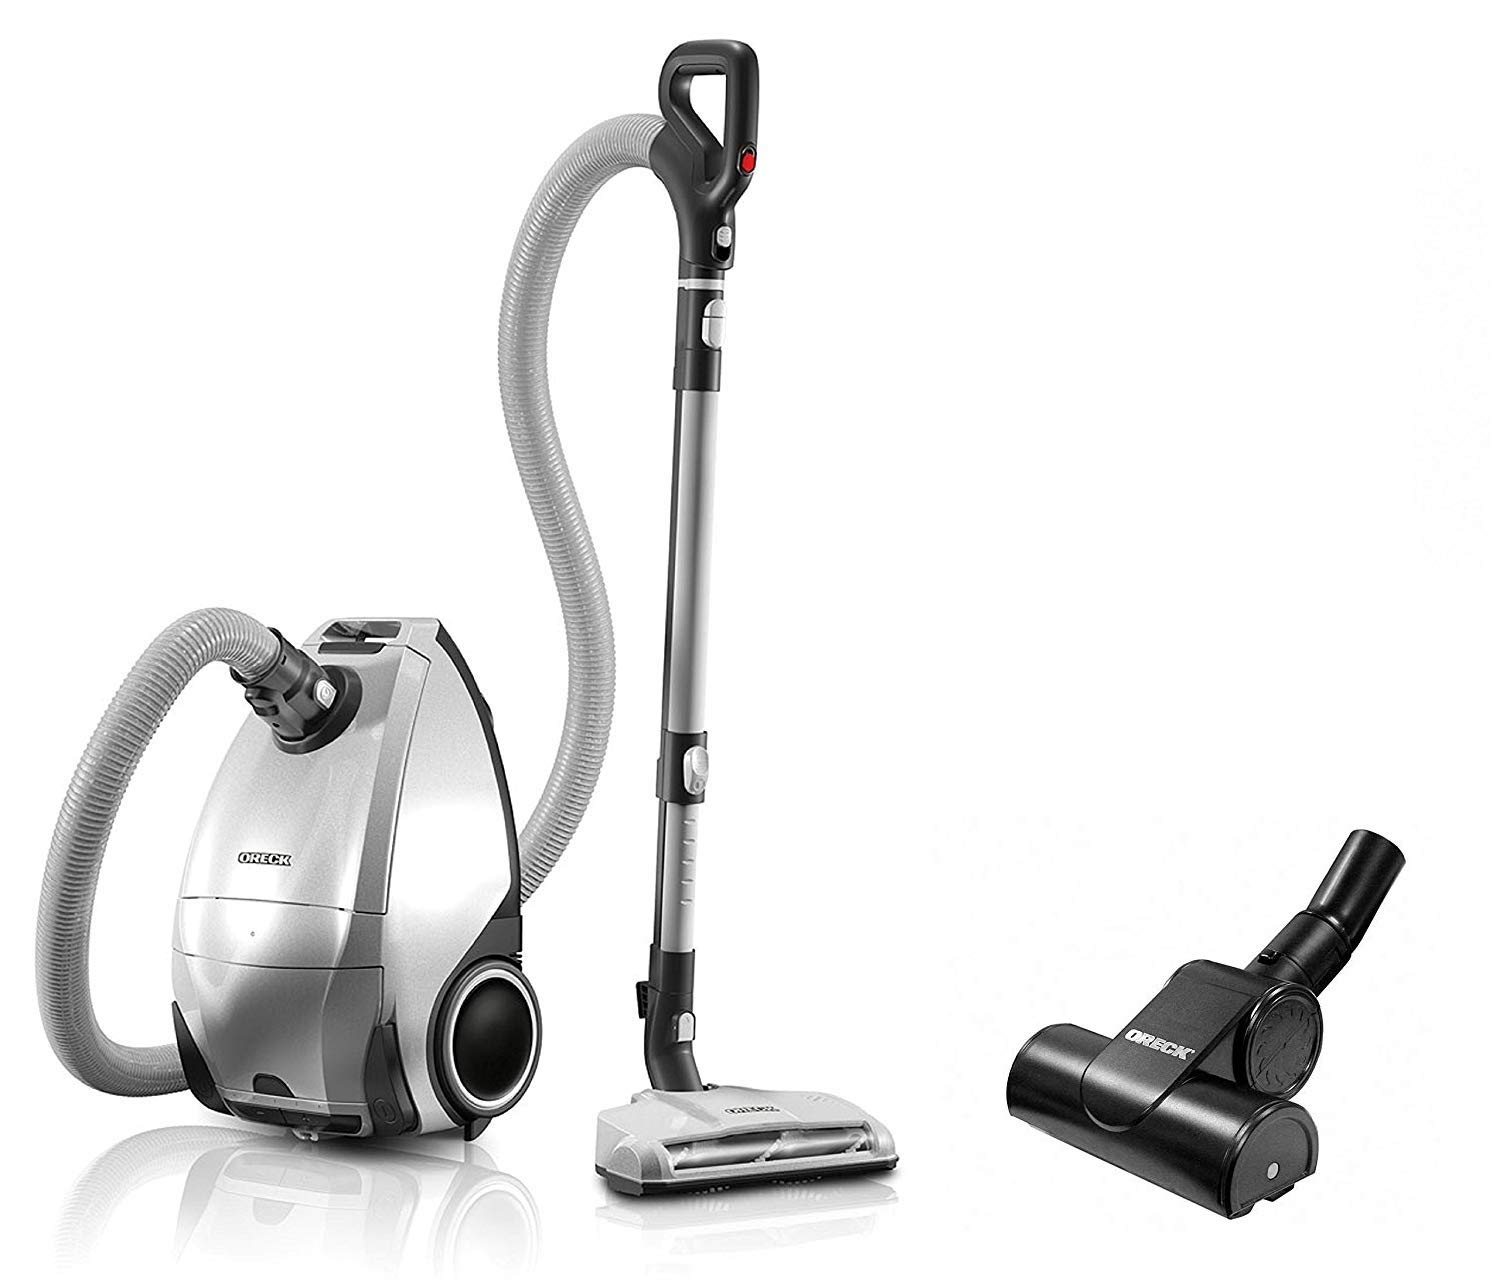 ORECK Venture Pro PetPower Multi Floor Bagged Canister Vacuum Cleaner   Carpet, Tile and Hardwood Flooring   Dirt, Debris, Pet Hair   Lightweight, High-Suction Clean   7 Year Warranty and 7 Tune-Ups